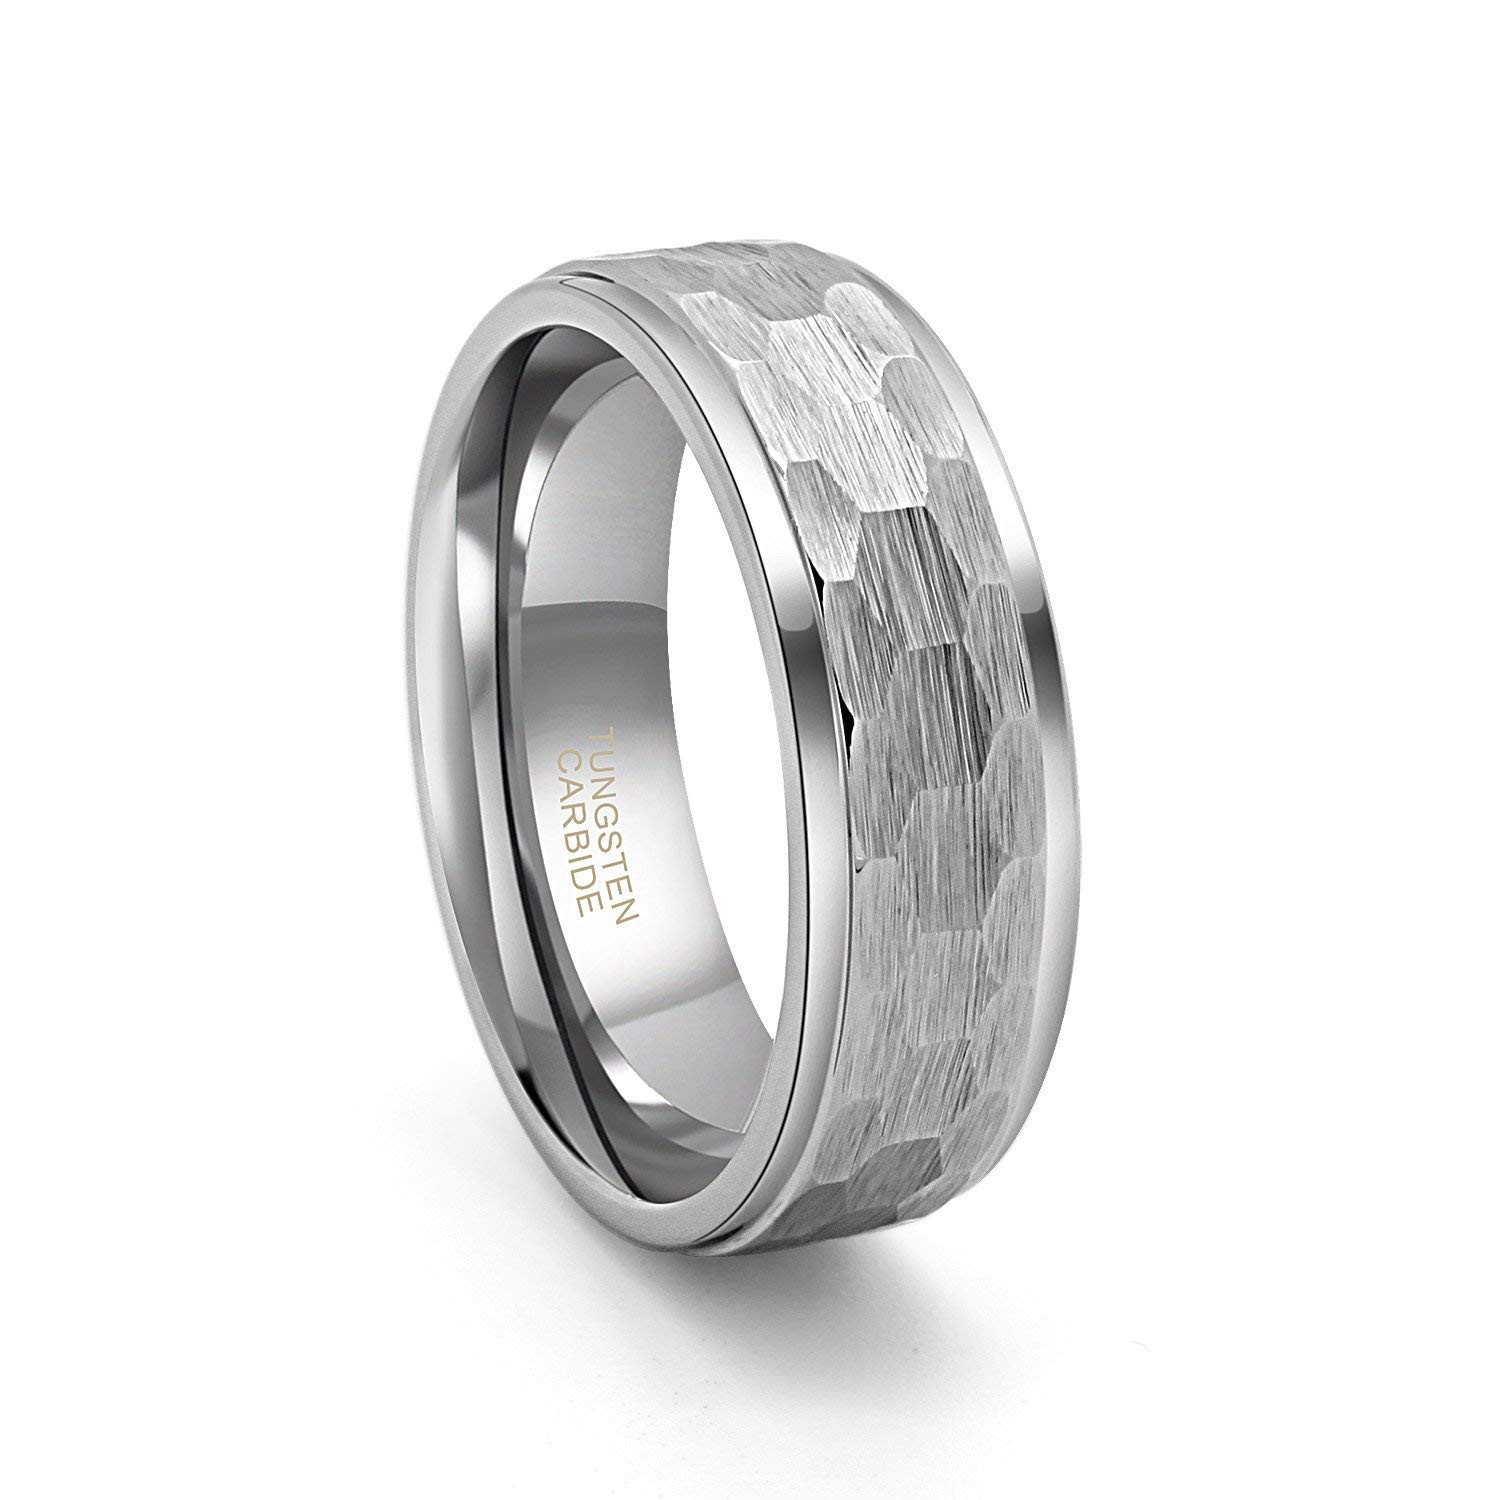 Athena Jewelry Tungsten Collection Unisex Stylish Genuine Tungsten CARBON FIBER Wedding Band Ring in a Gift Box Size Selectable